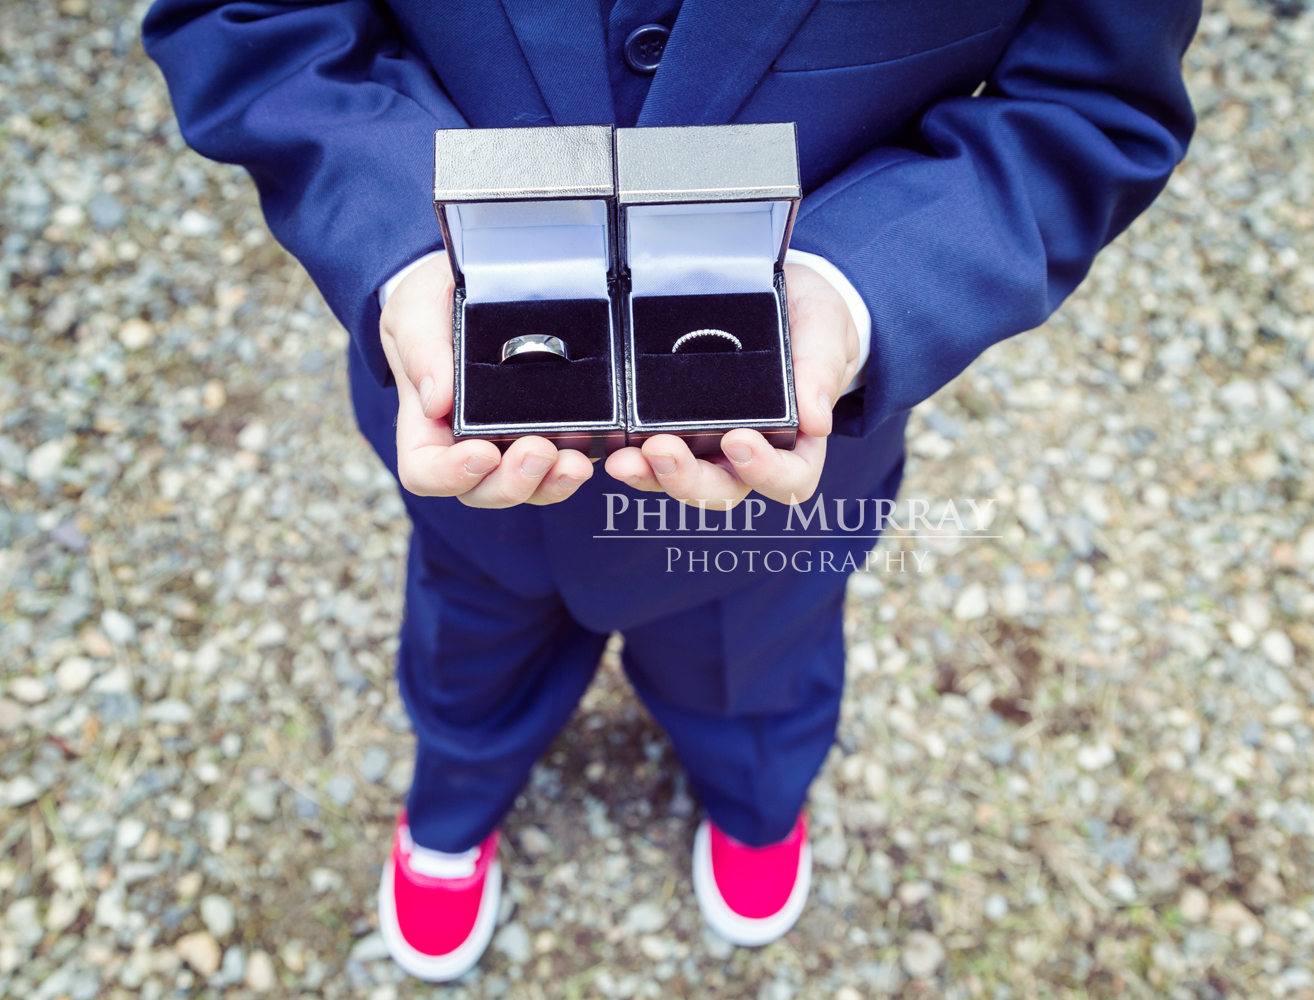 Wedding_A&F_Couple_Bride_Groom_Rings_Page_Boy_Philip_Murray_Photography